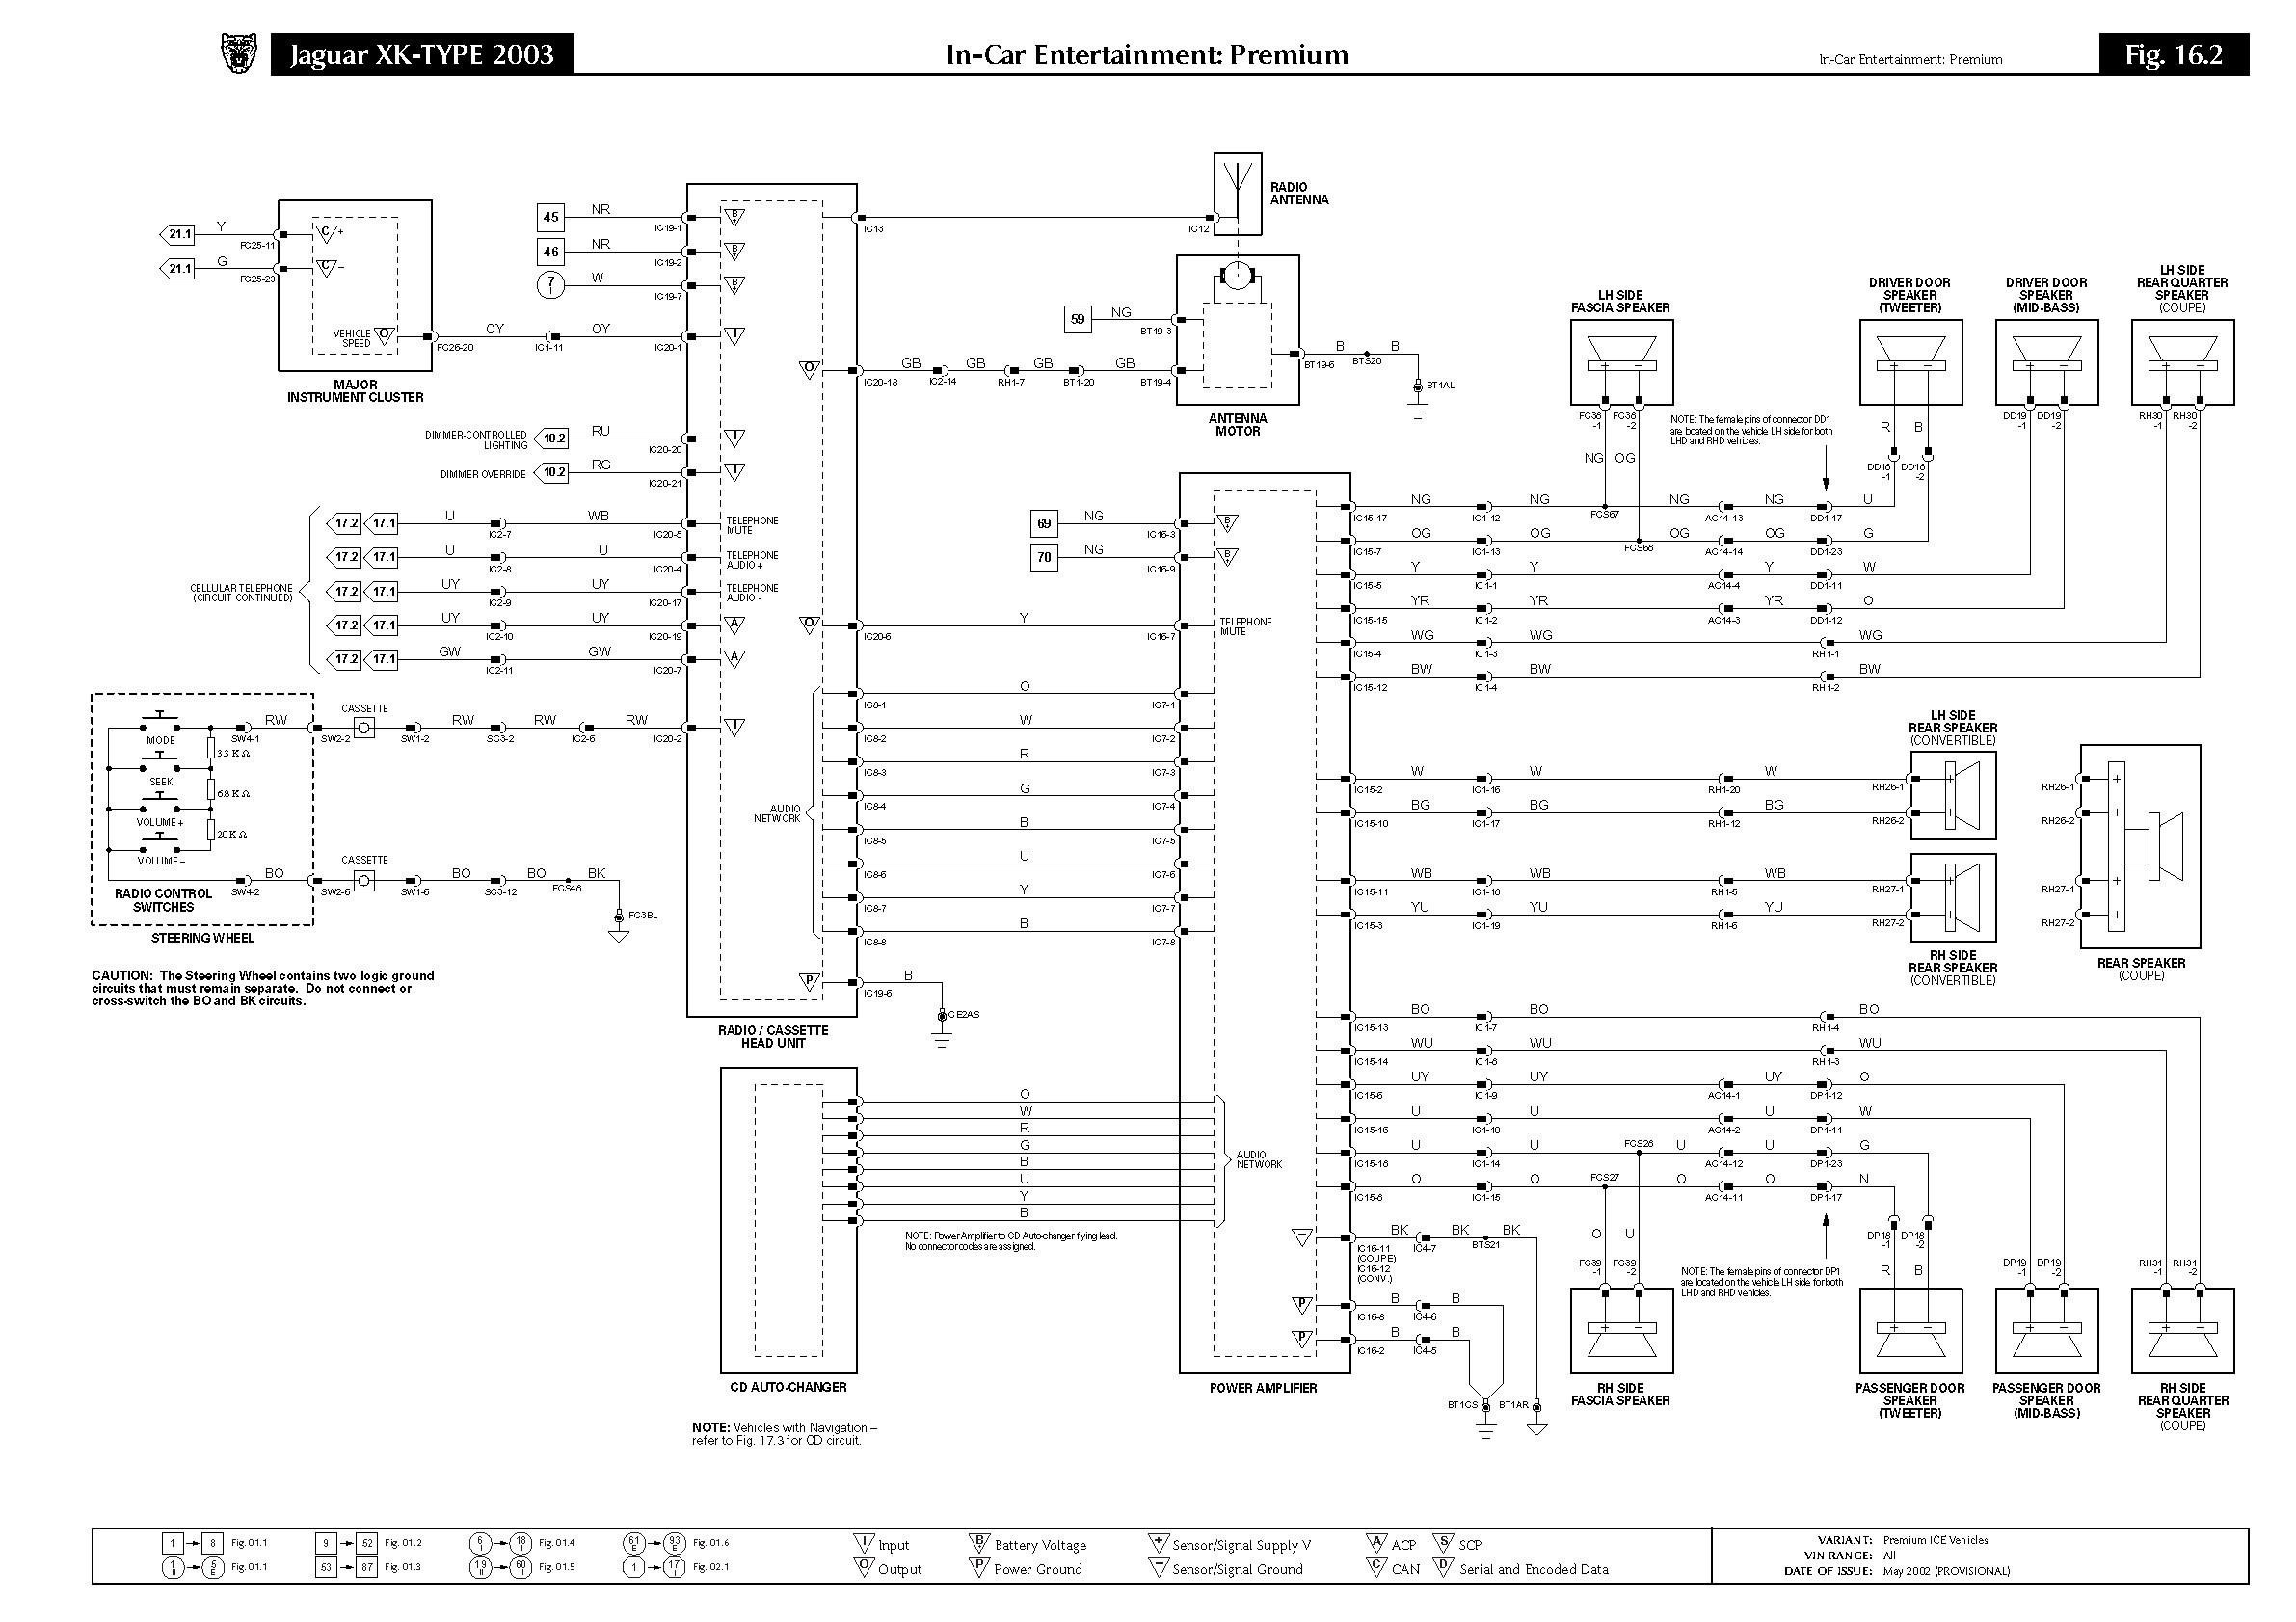 jaguar x type engine diagram wiring diagram rh vw26 vom winnenthal de jaguar x type 2.0 diesel engine diagram jaguar x type 2.2 diesel engine diagram